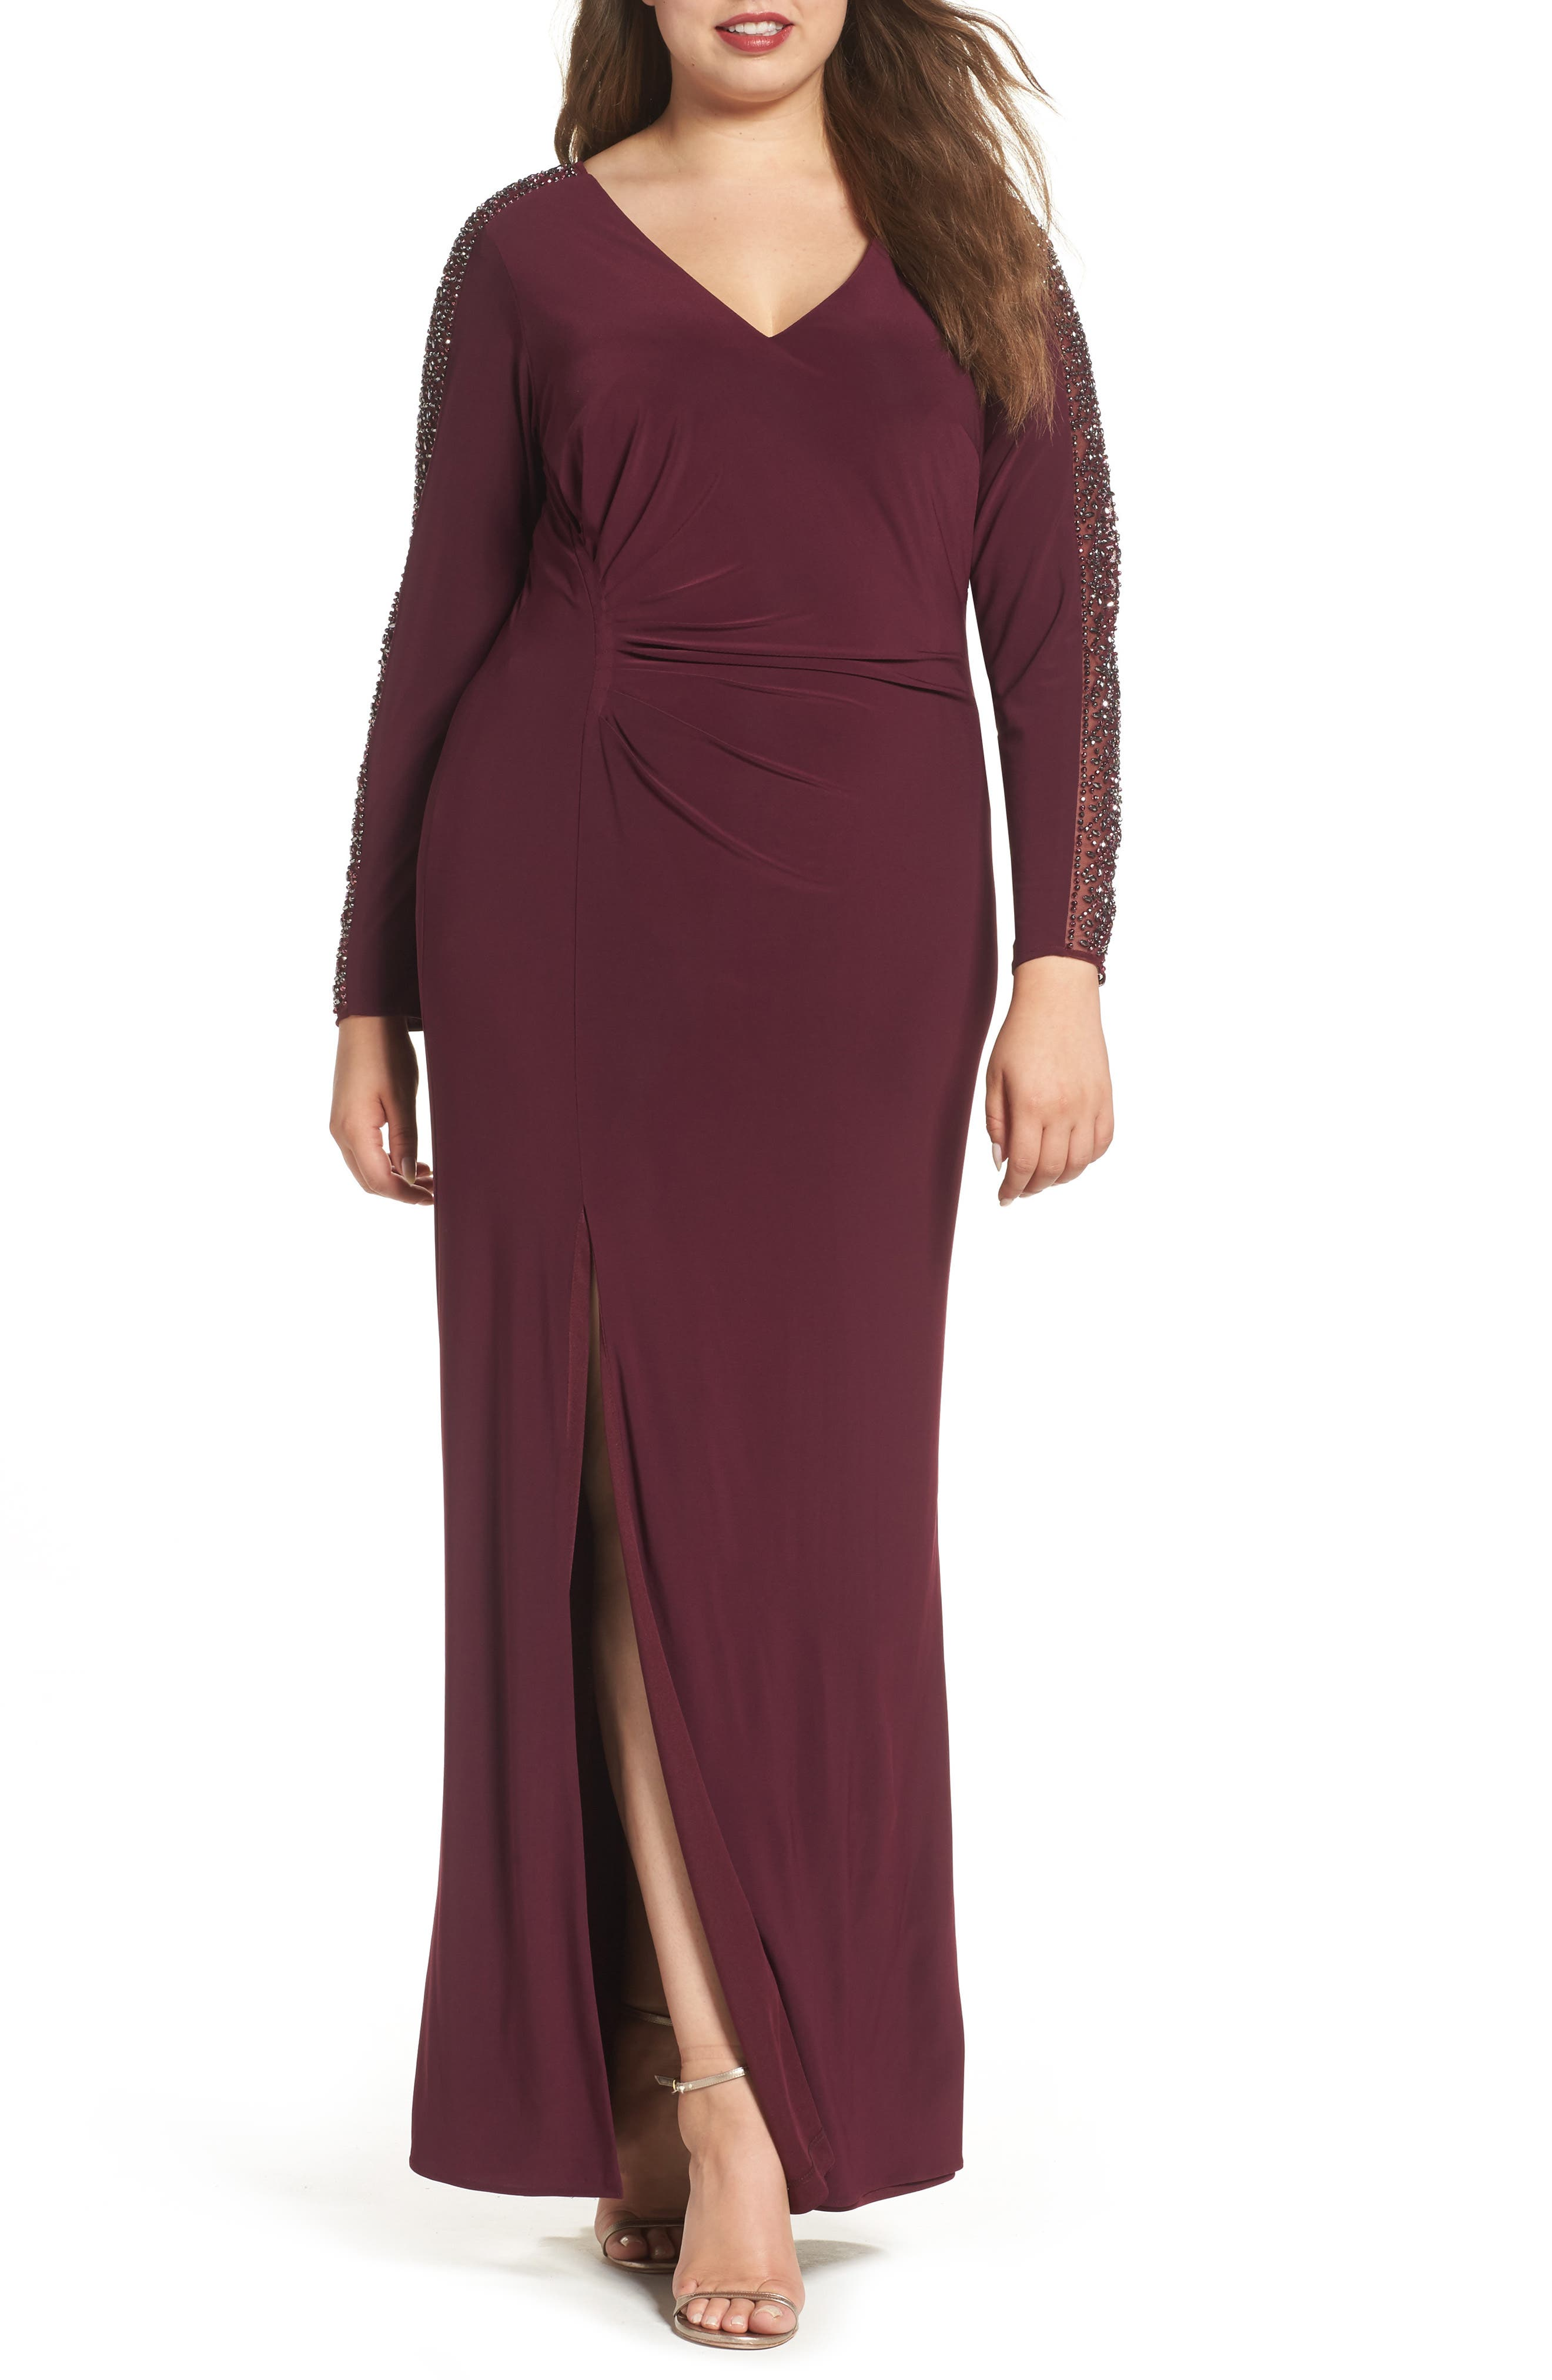 Alternate Image 1 Selected - Xscape Embellished Jersey A-Line Gown (Plus Size)